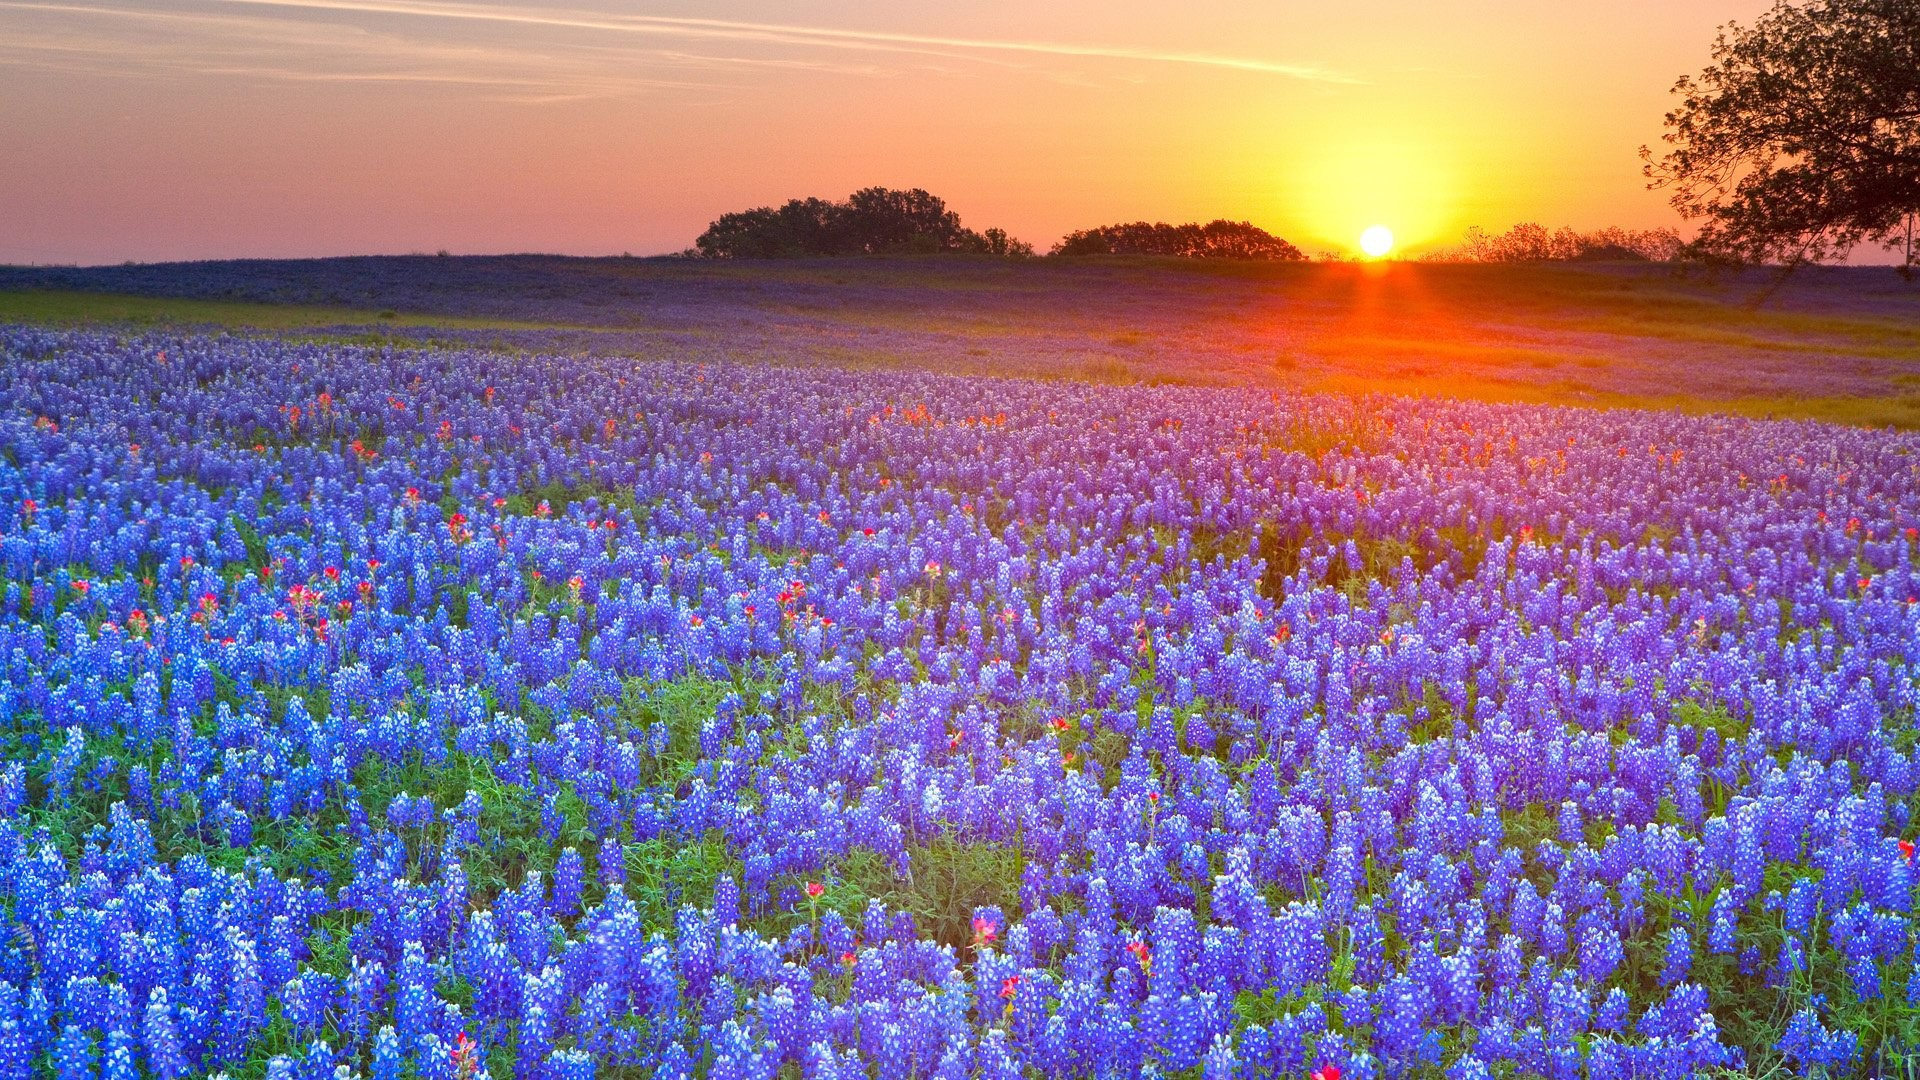 Res: 1920x1080, HD Wallpaper | Background Image ID:299470.  Earth Texas Bluebonnets